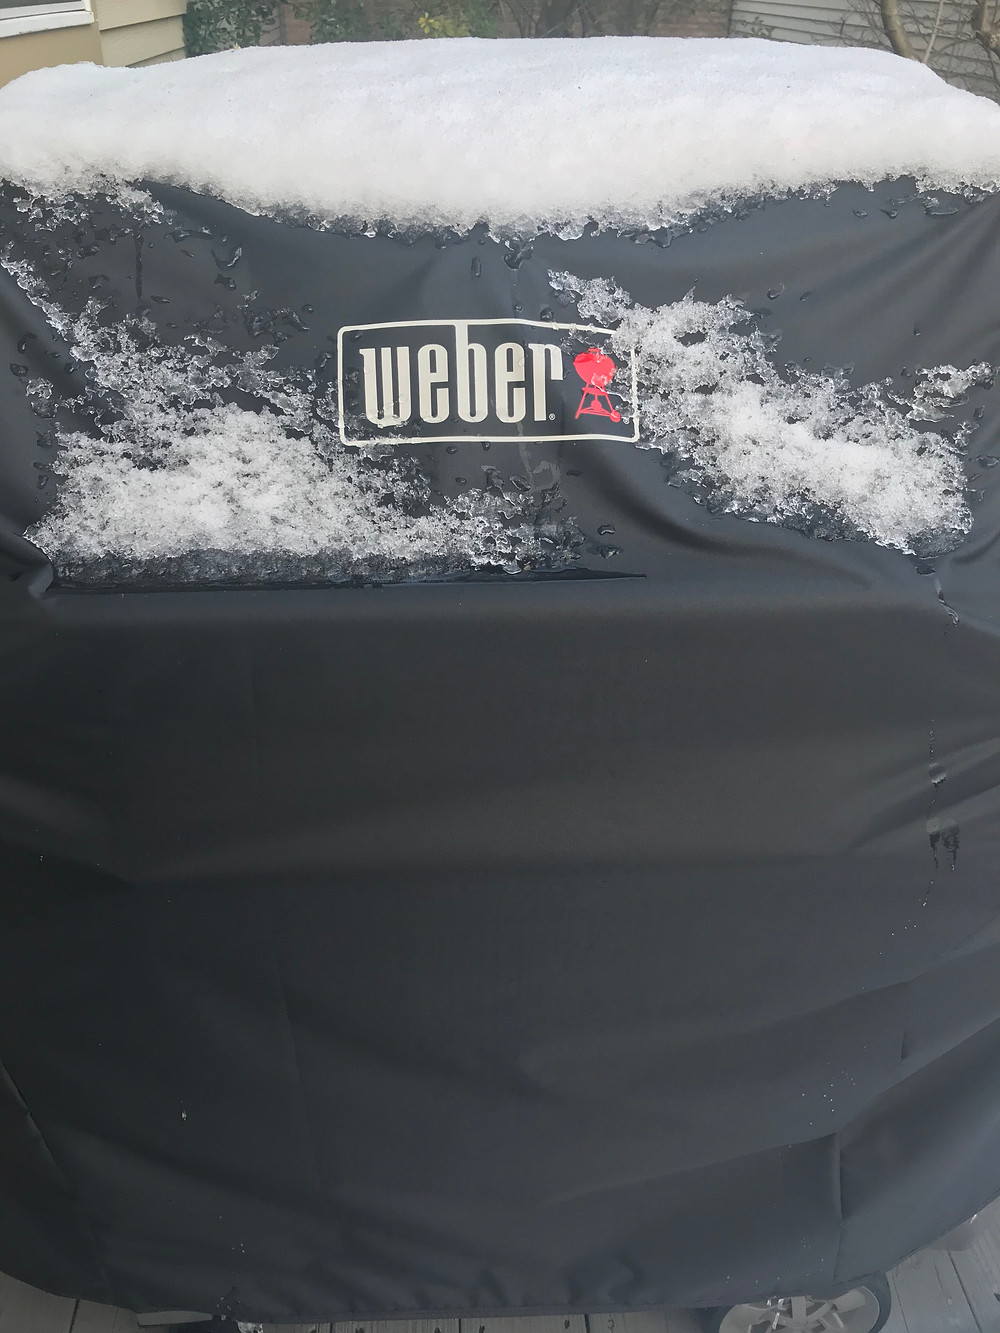 Weber Gas Grill Cover with snow on top of it